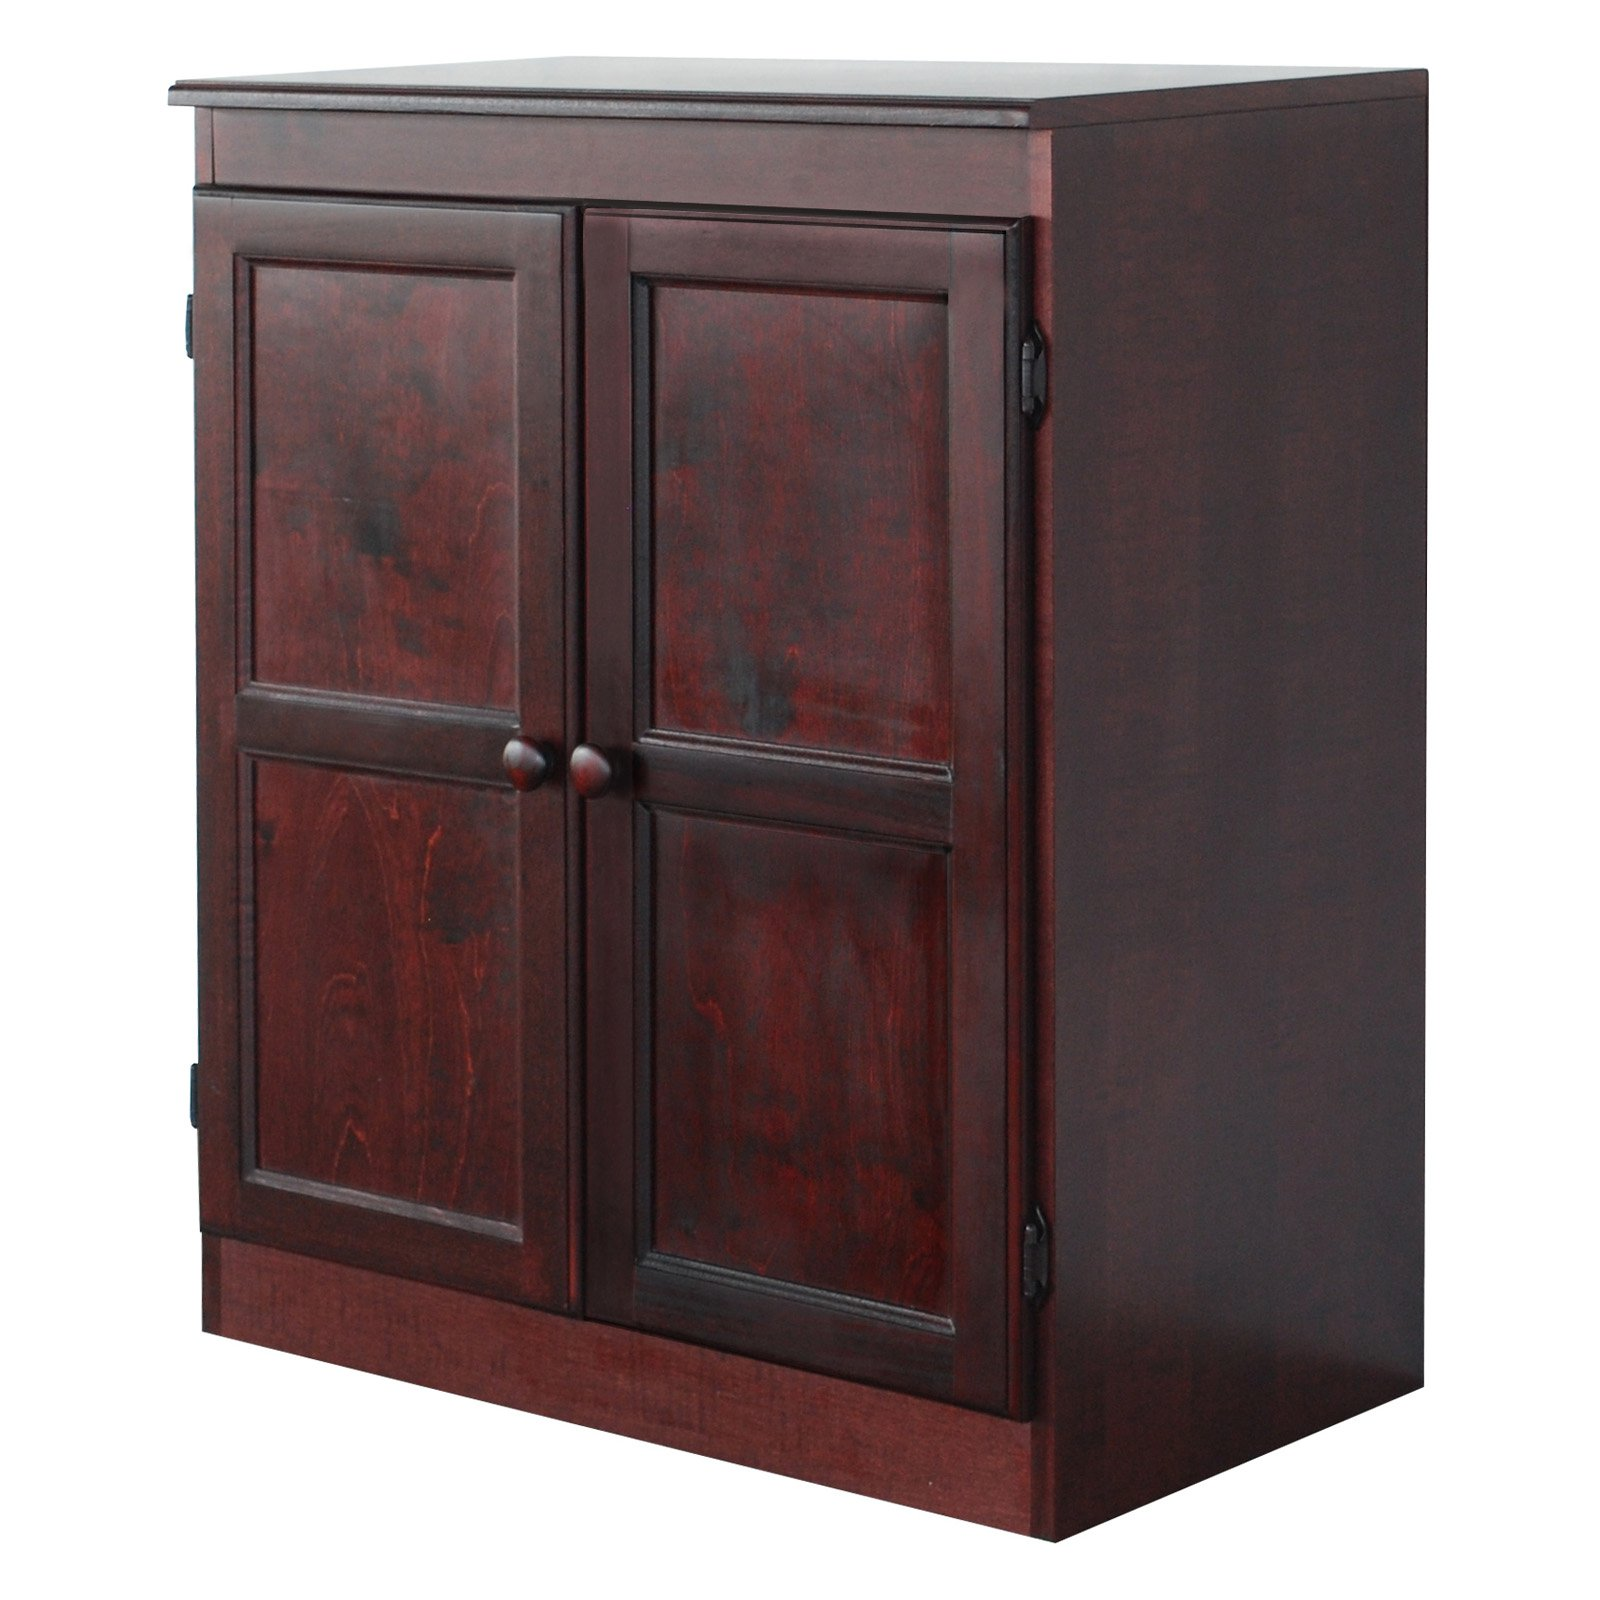 Concepts in Wood Cherry KT613C Storage/Utility Closet